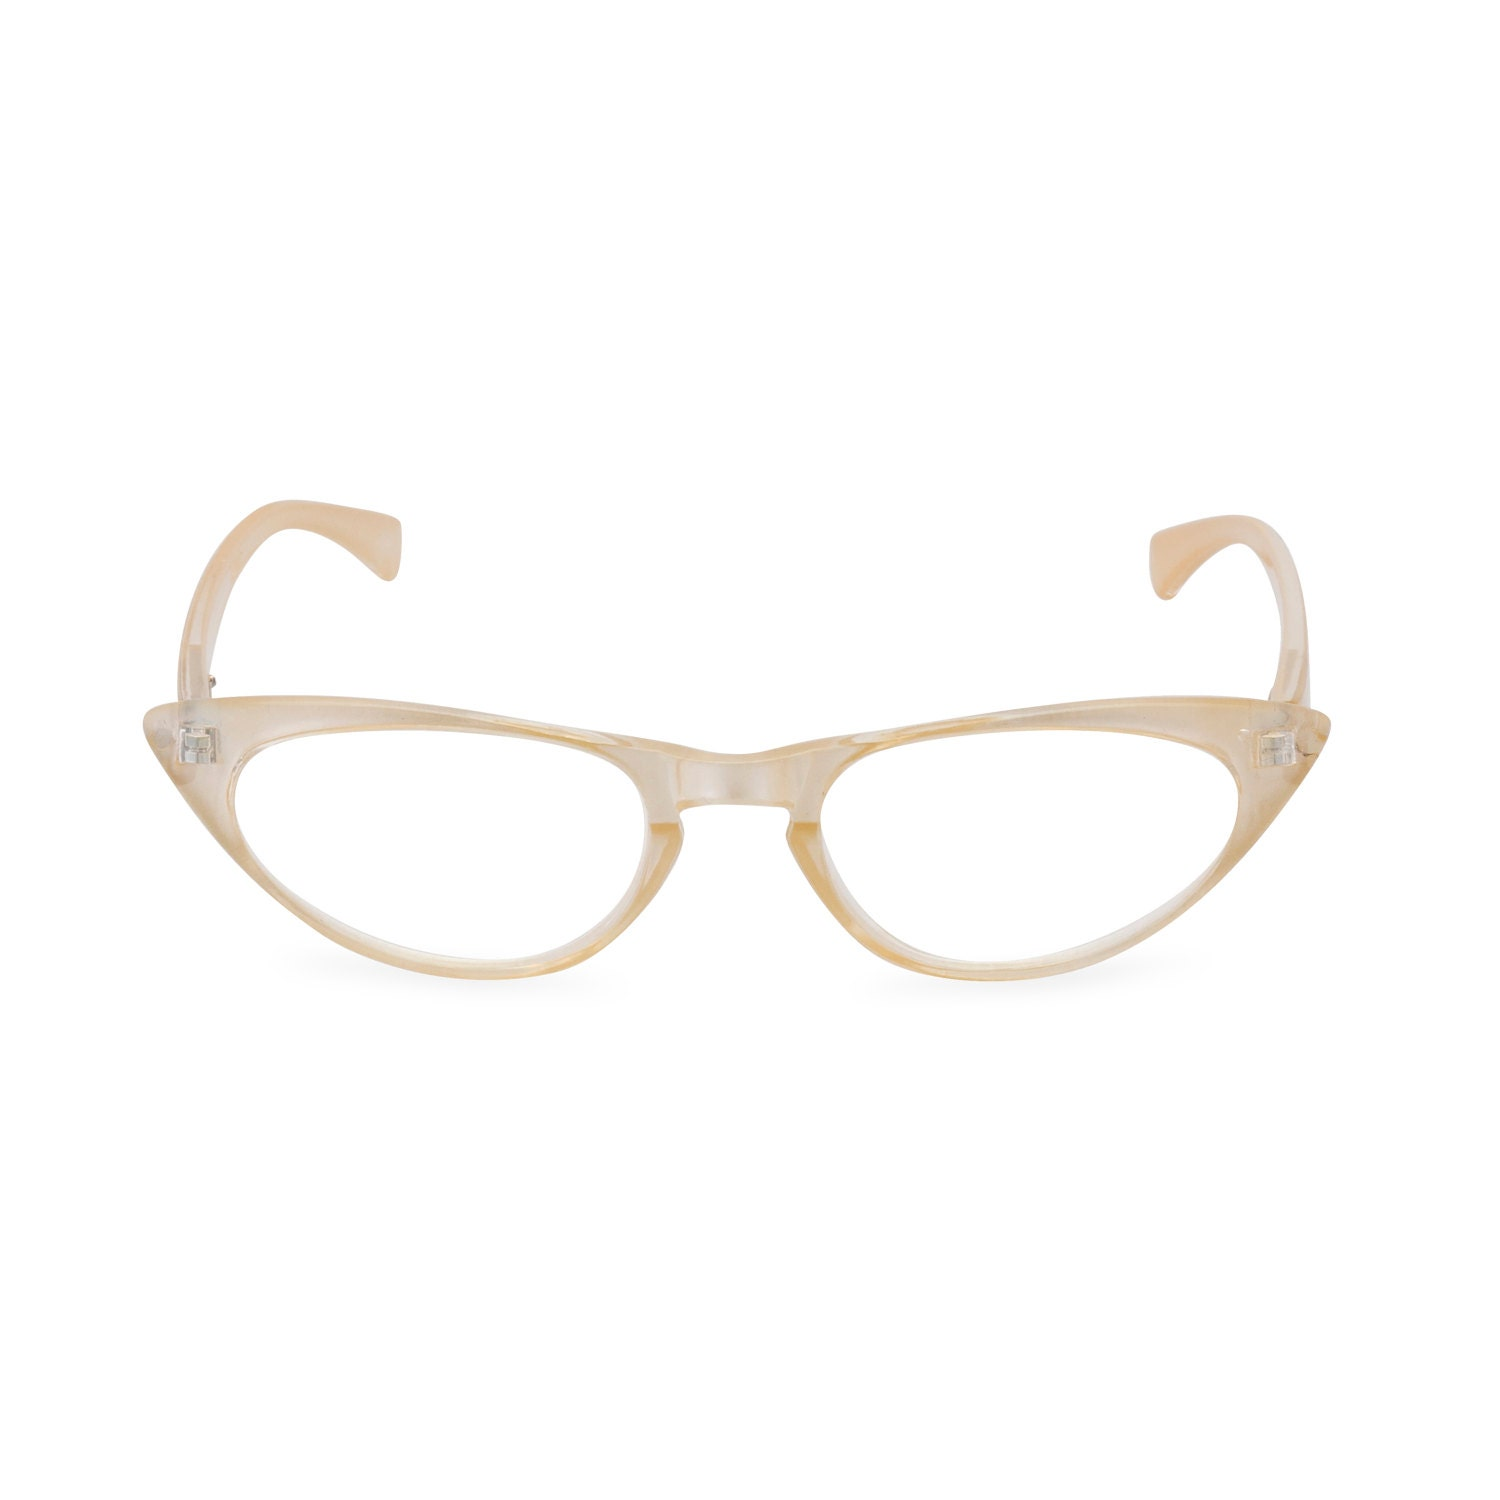 1950s 60s style Pearl CAT EYE Rxable frame or reading glasses 1.25 to 3.00 NEW to original vintage design best seller Peggy